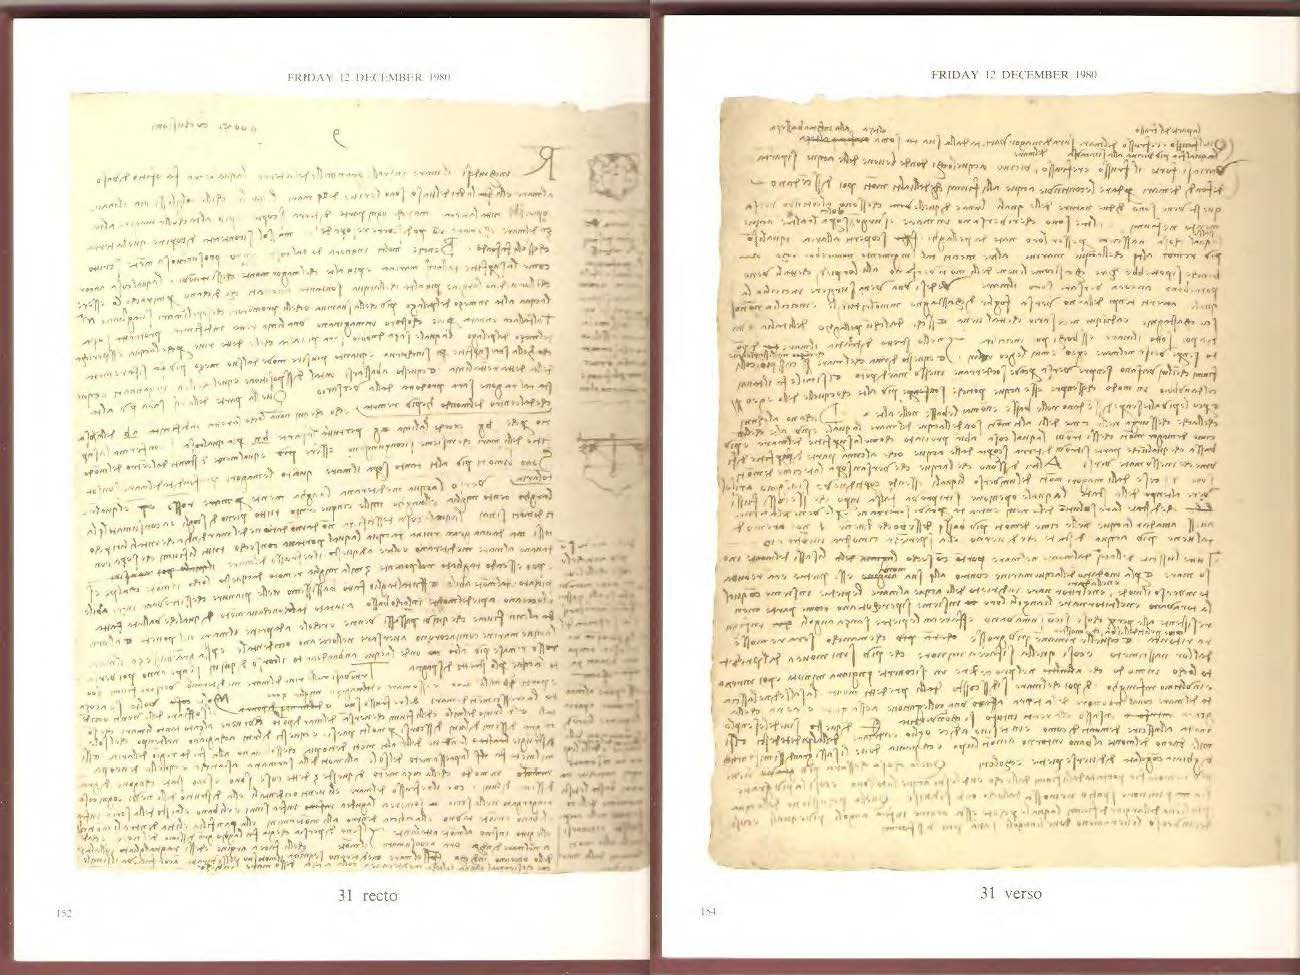 Codex_Leicester_Page_31_Image_0001.jpg